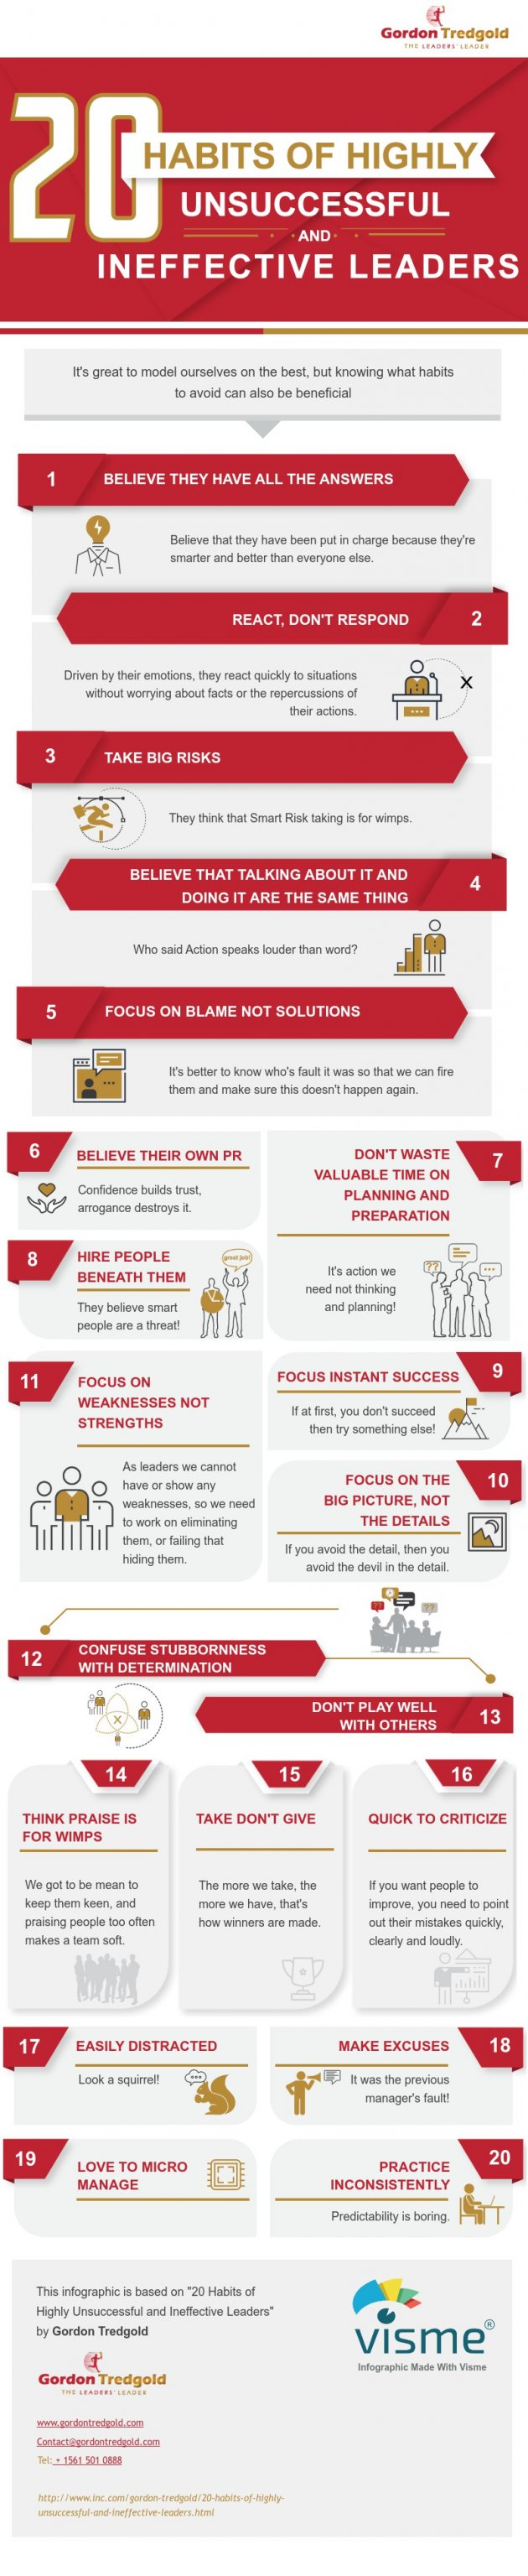 20 Habits of Highly Unsuccessful and Ineffective Leaders (1)_35614